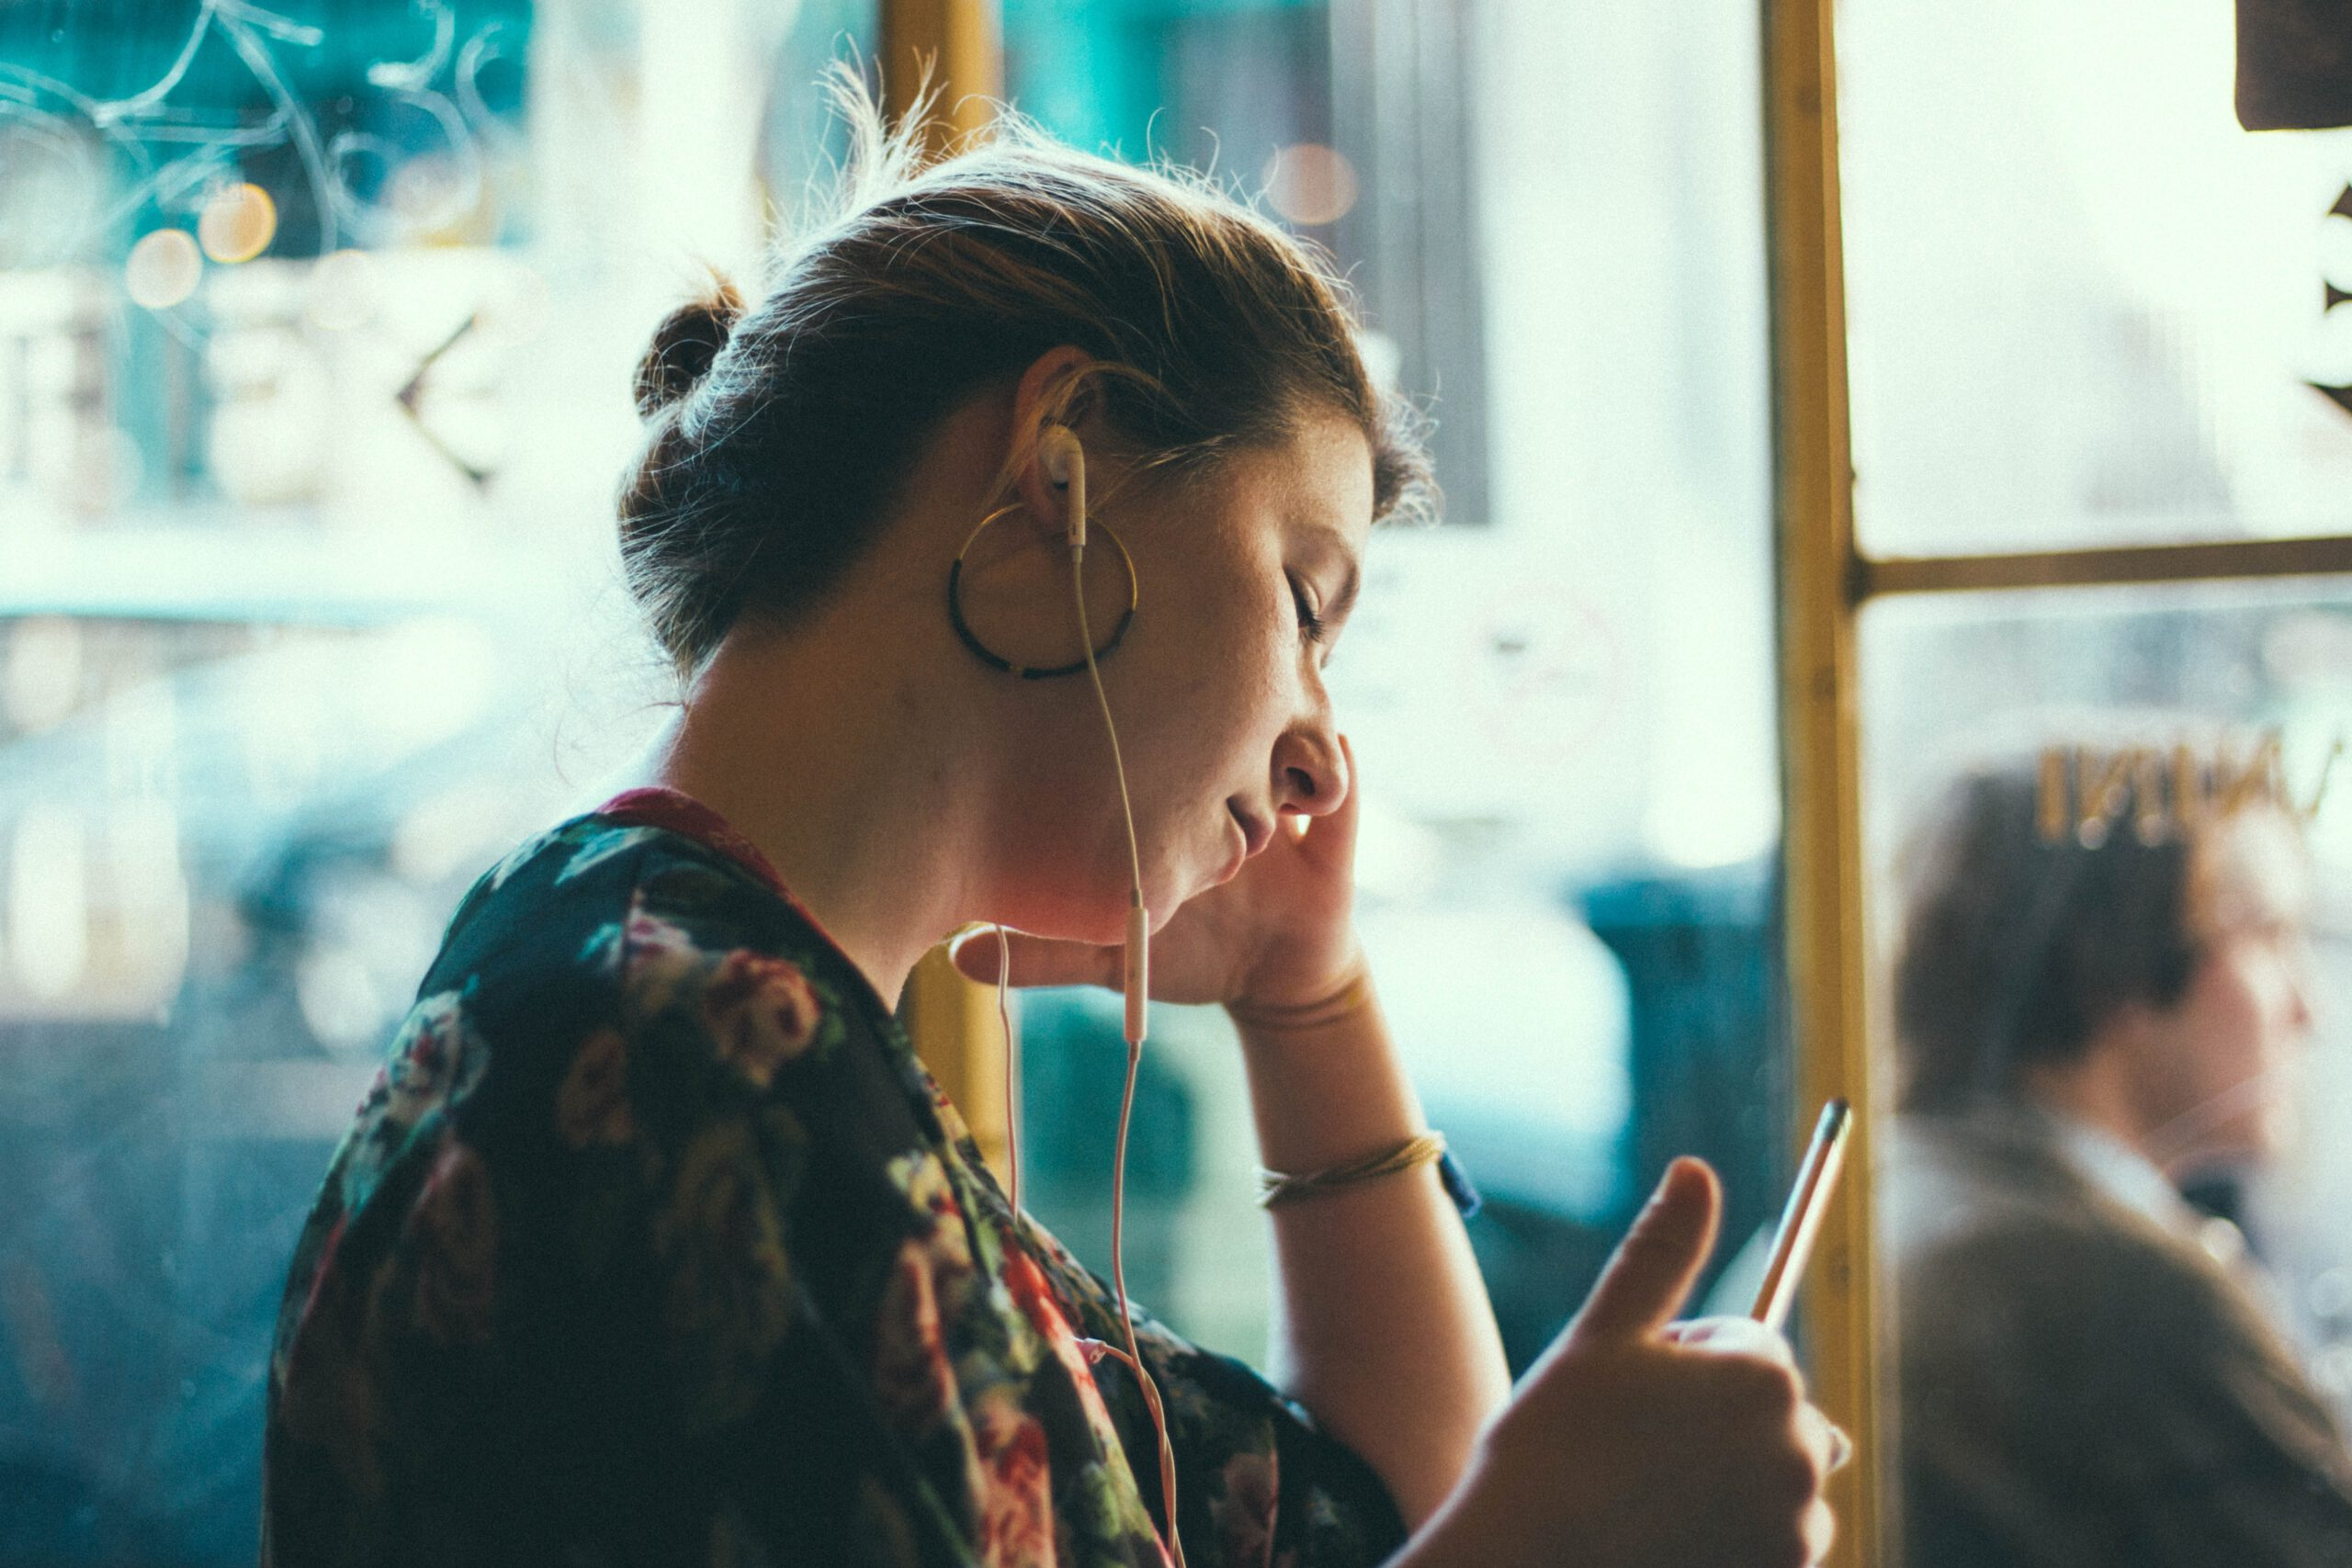 Top 8 Spotify podcasts to improve your debating skills